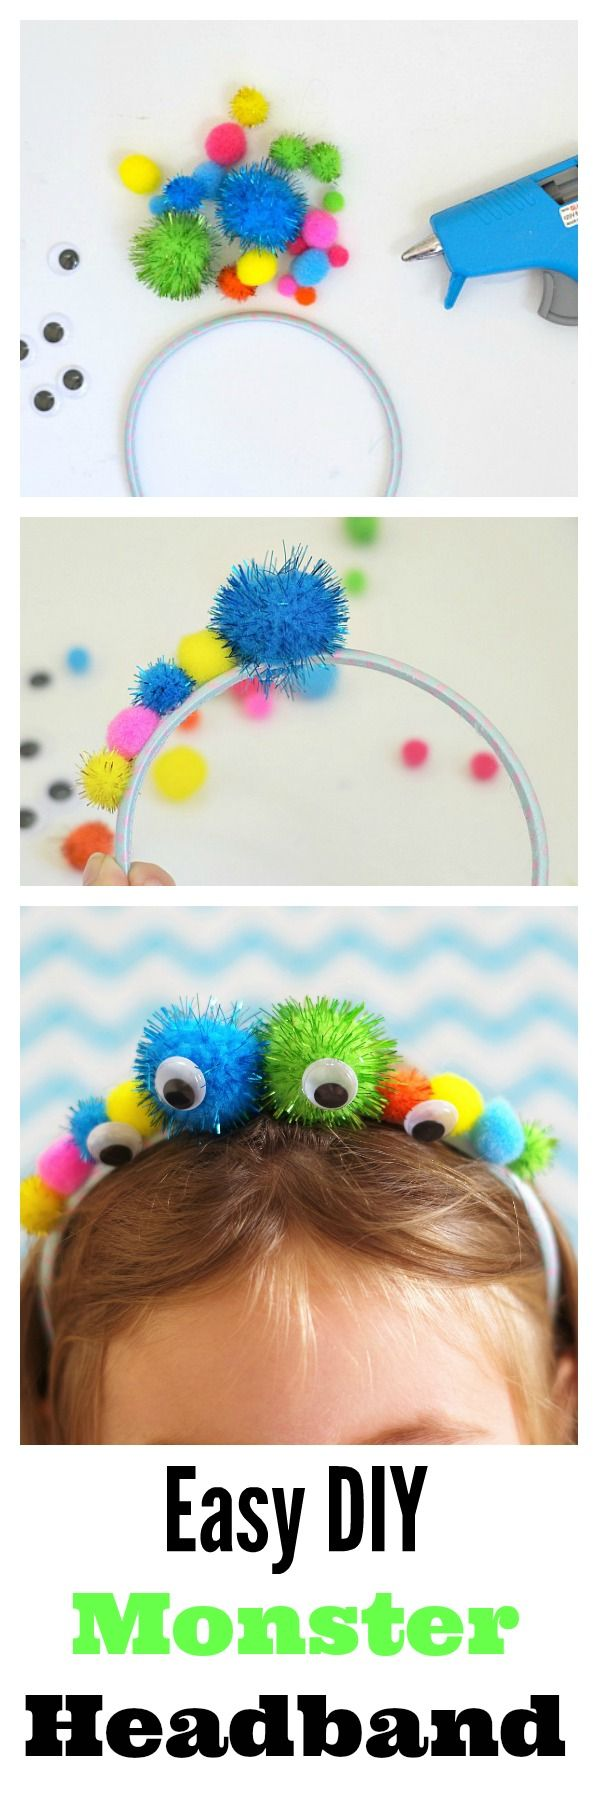 Easy DIY Monster Headband! Fun for Halloween and pretend play. Plus super easy to make.